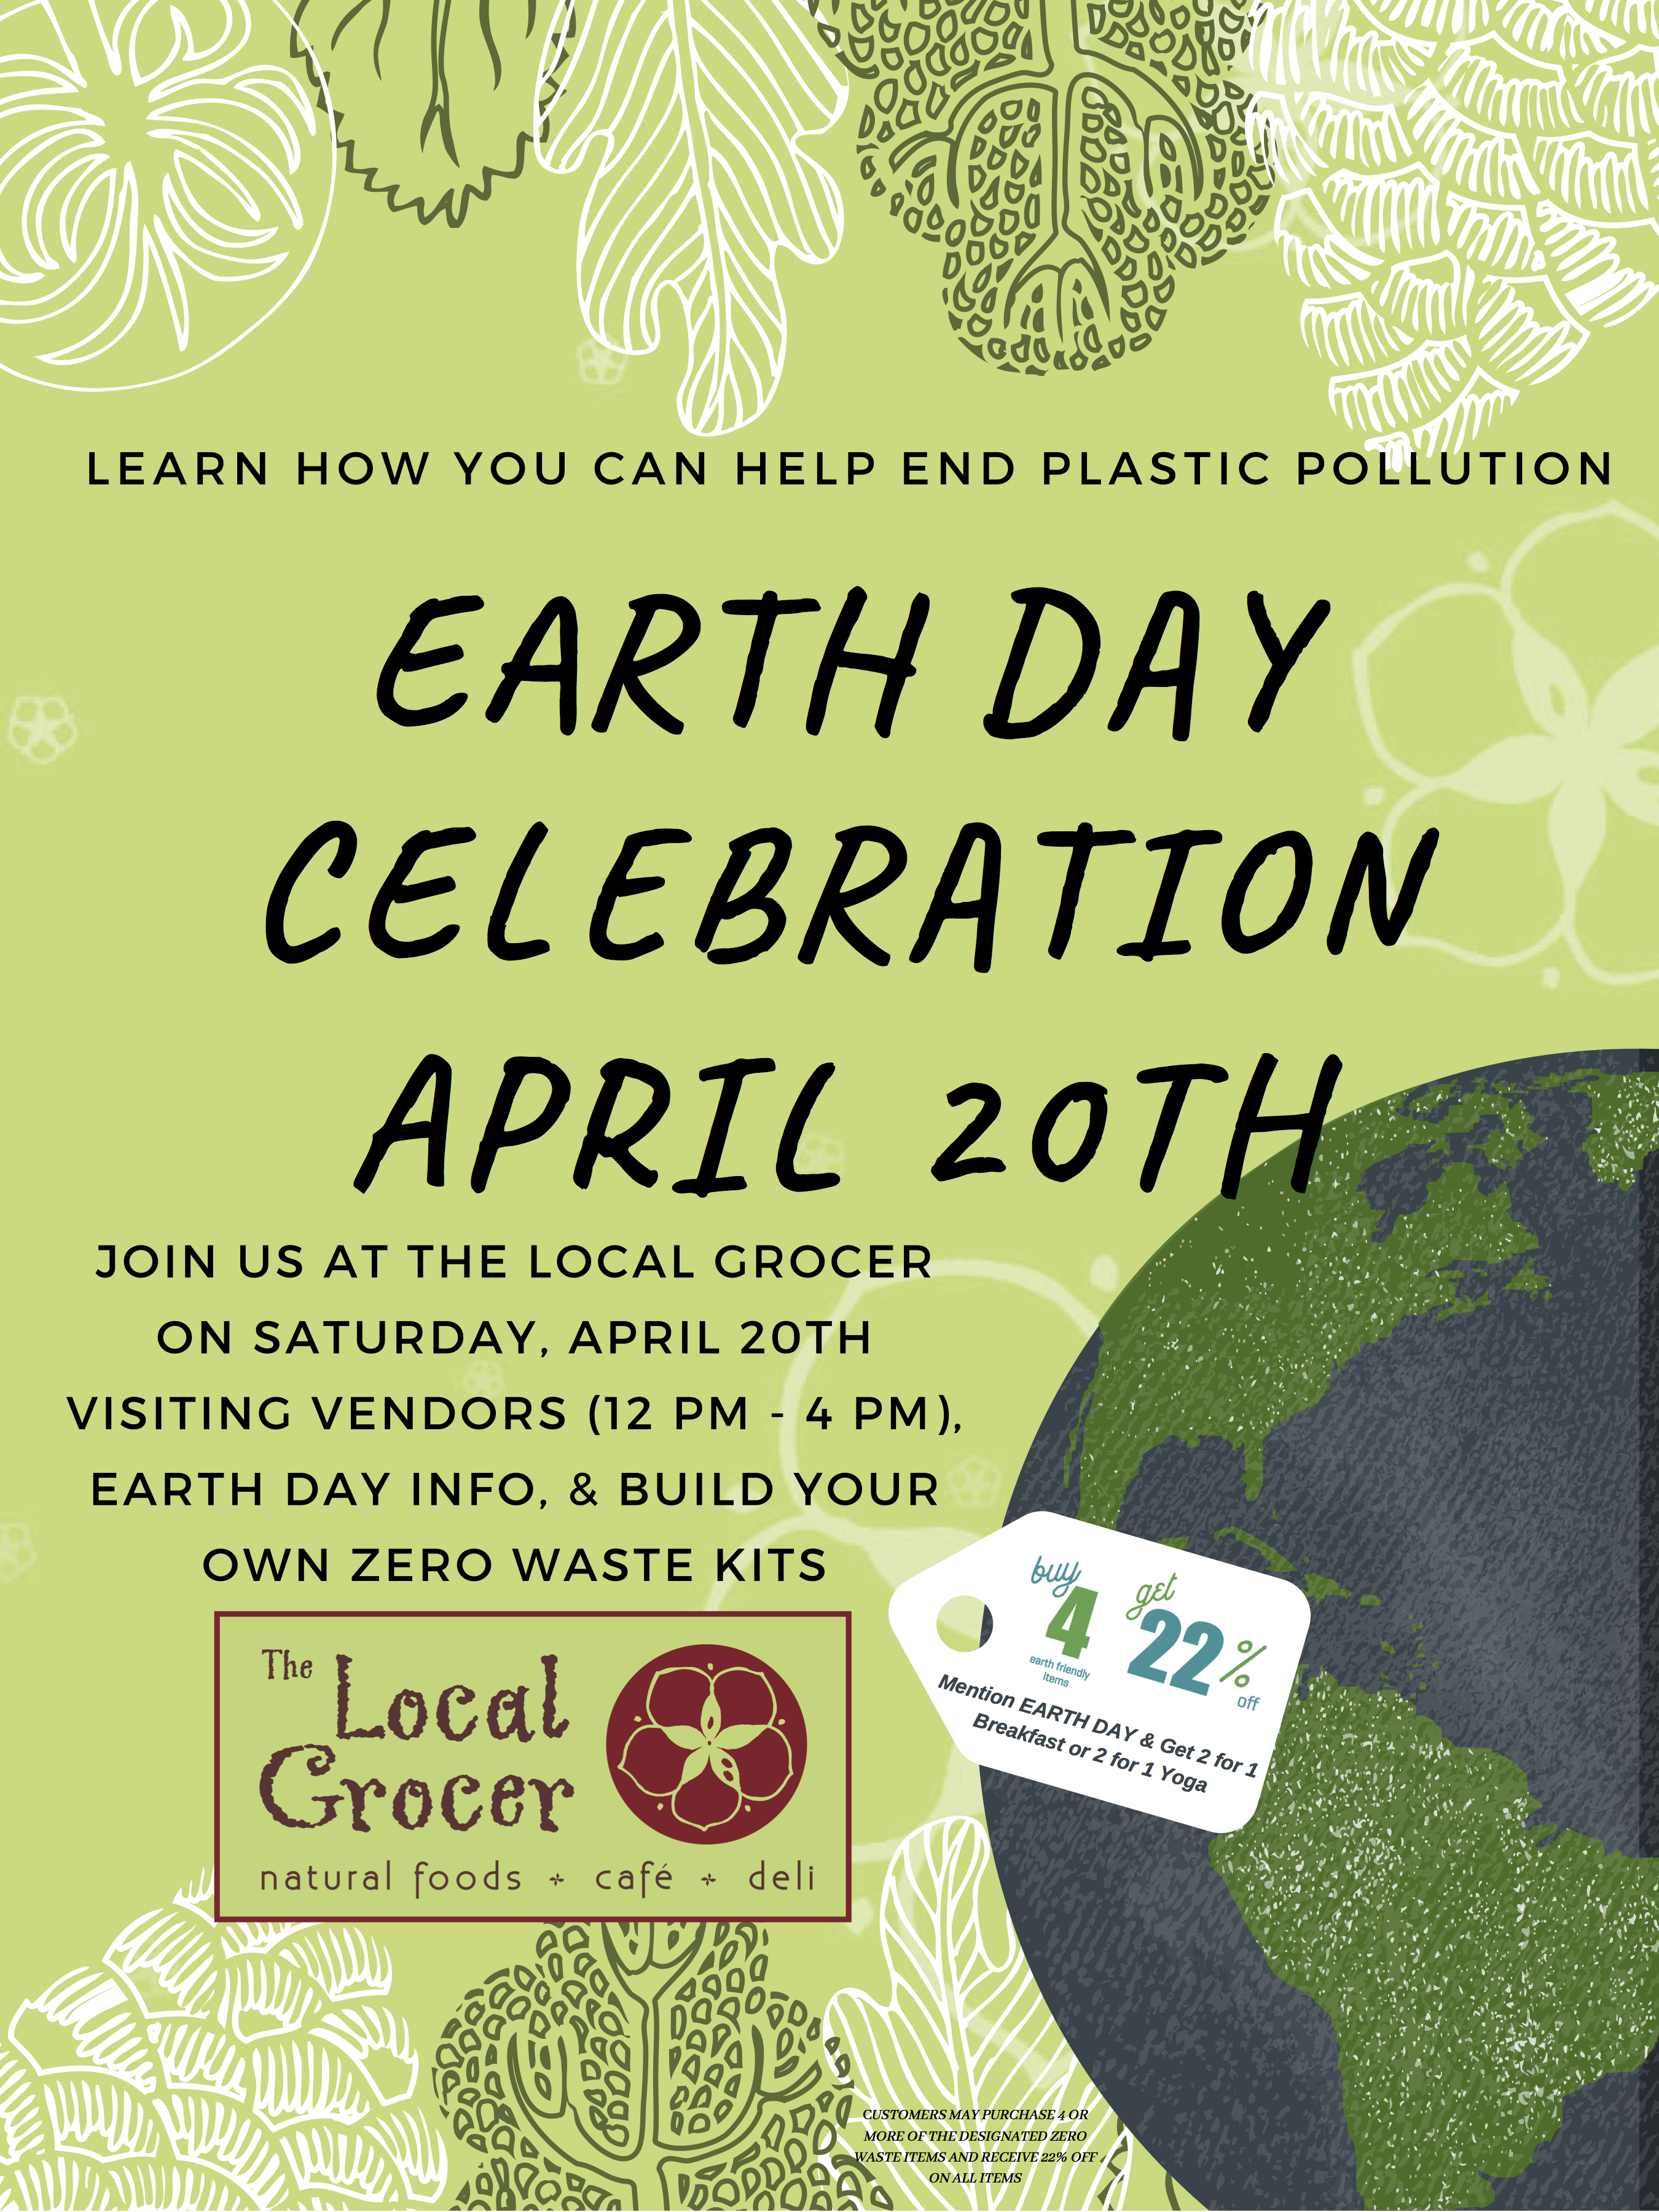 EARTH DAY CELEBRATION APRIL 20TH - The Local Grocer